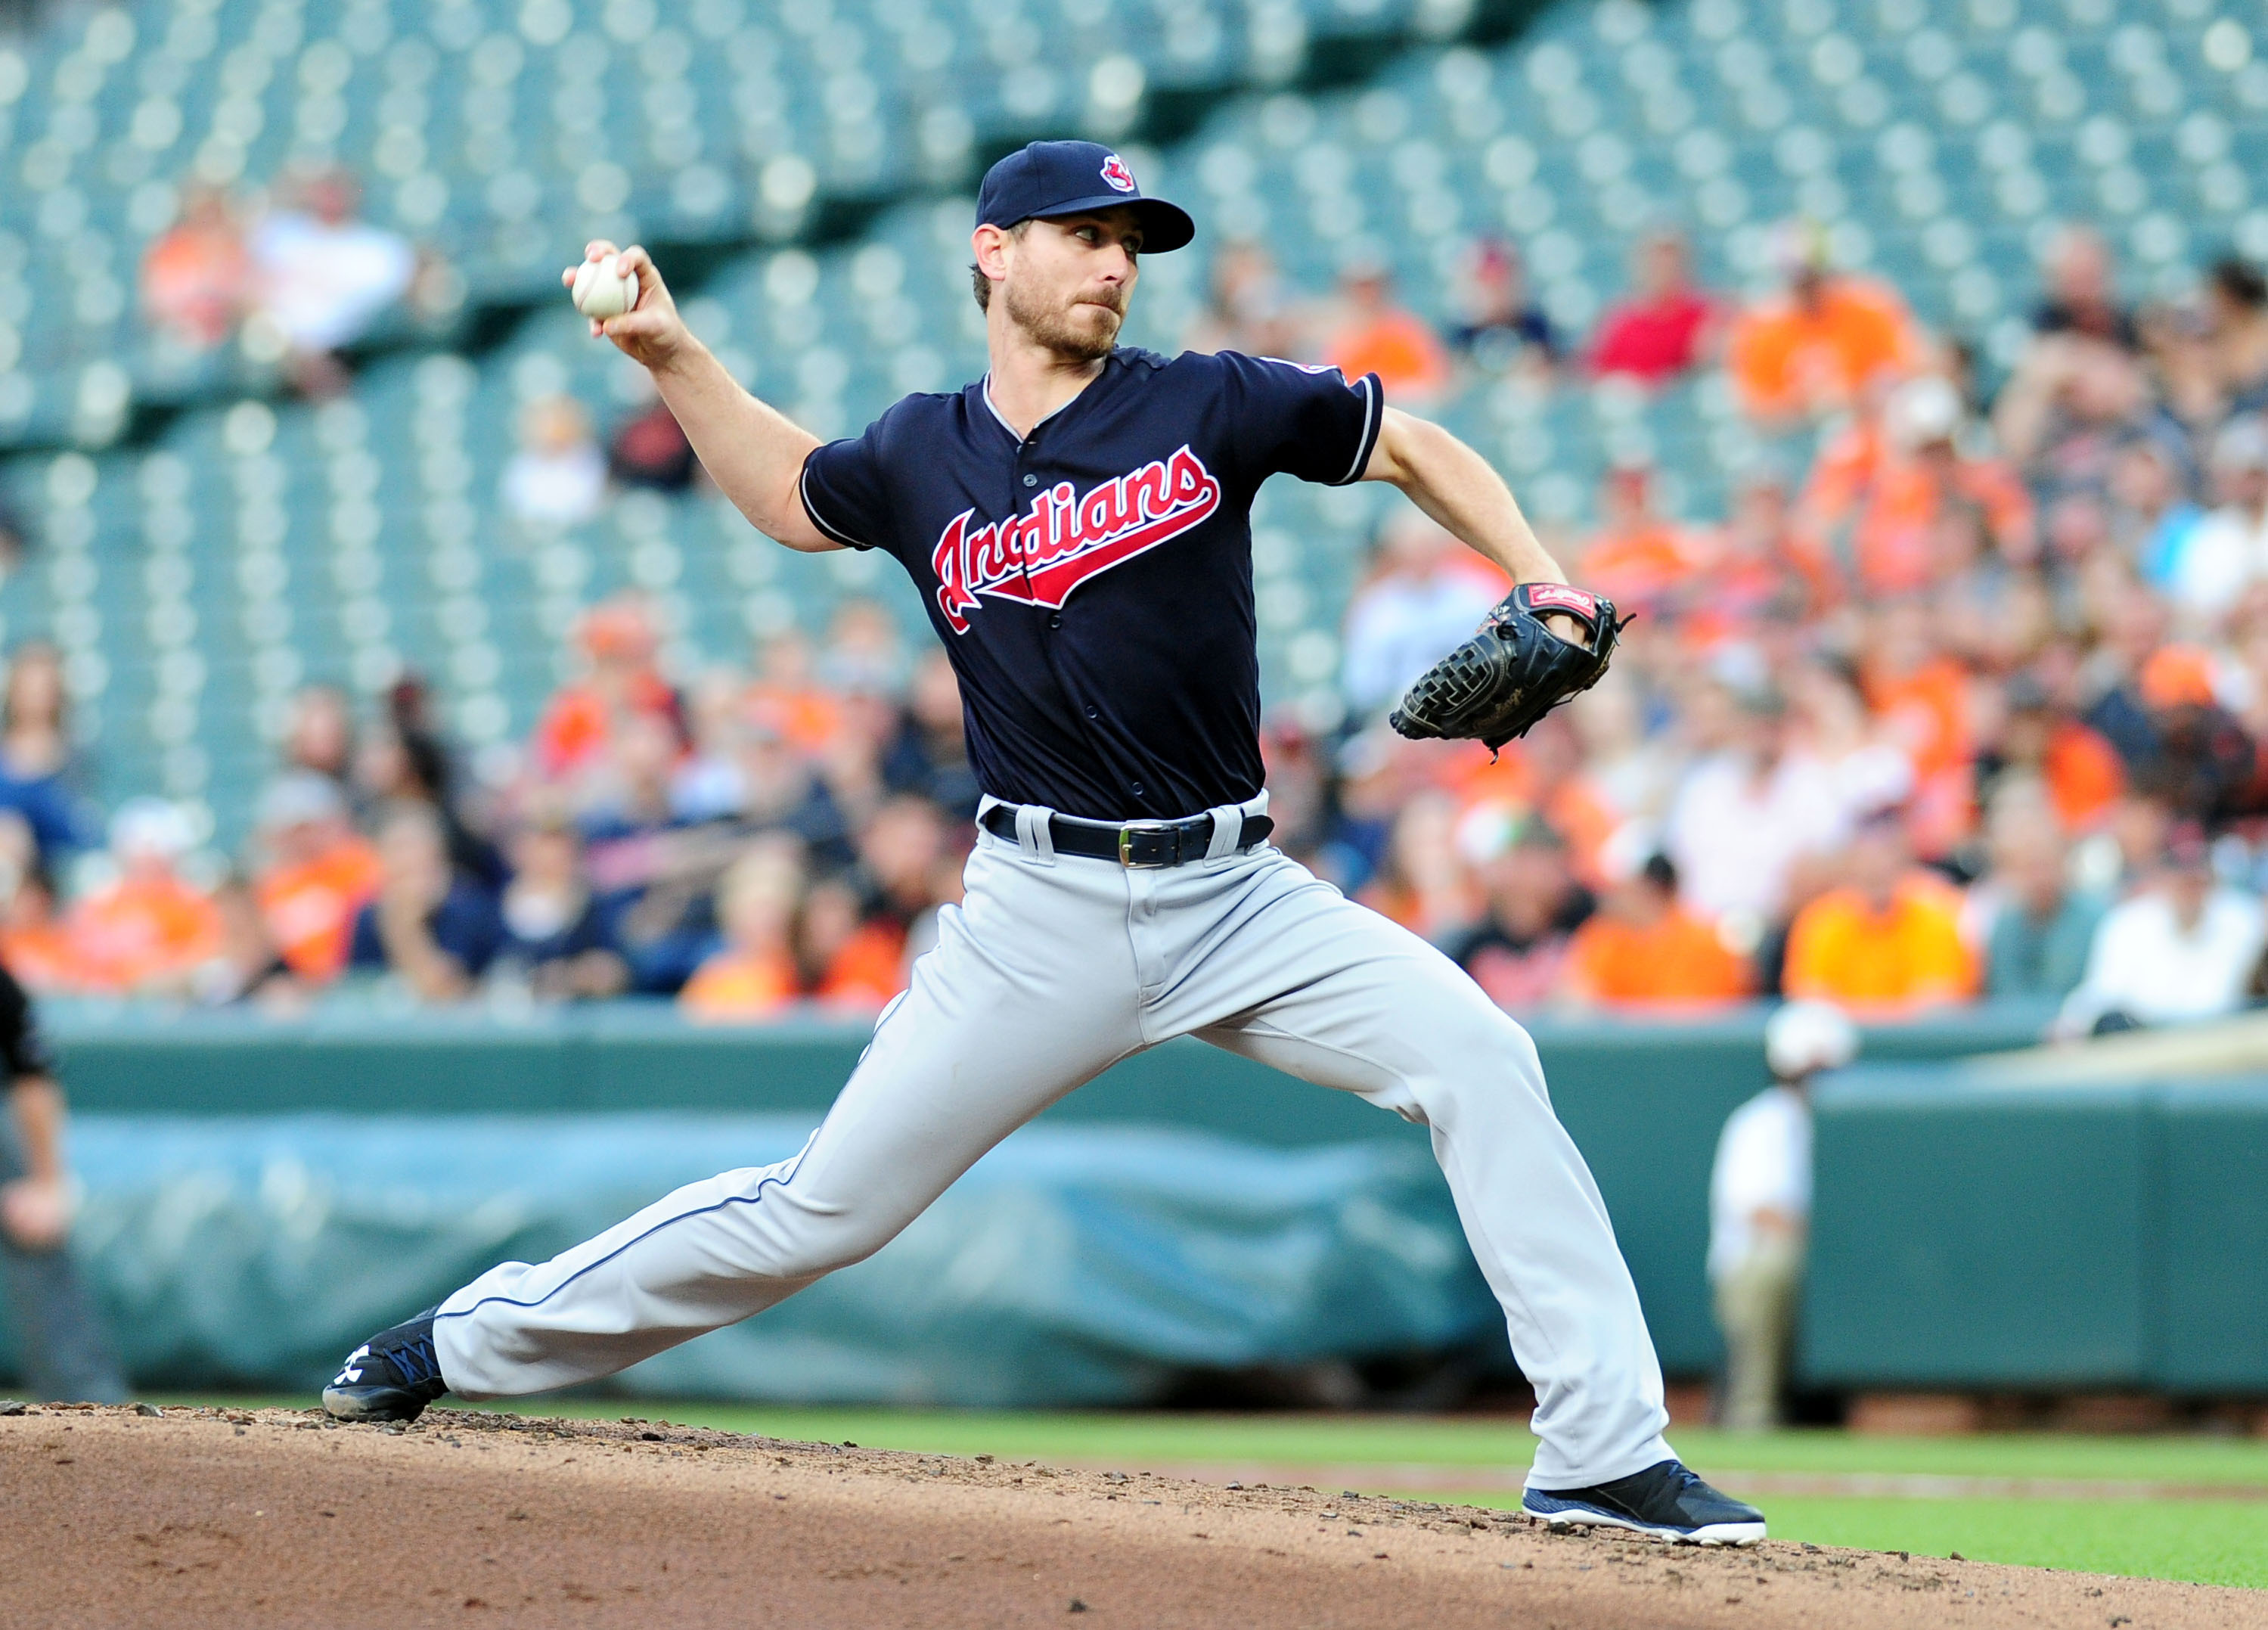 10122607-mlb-cleveland-indians-at-baltimore-orioles